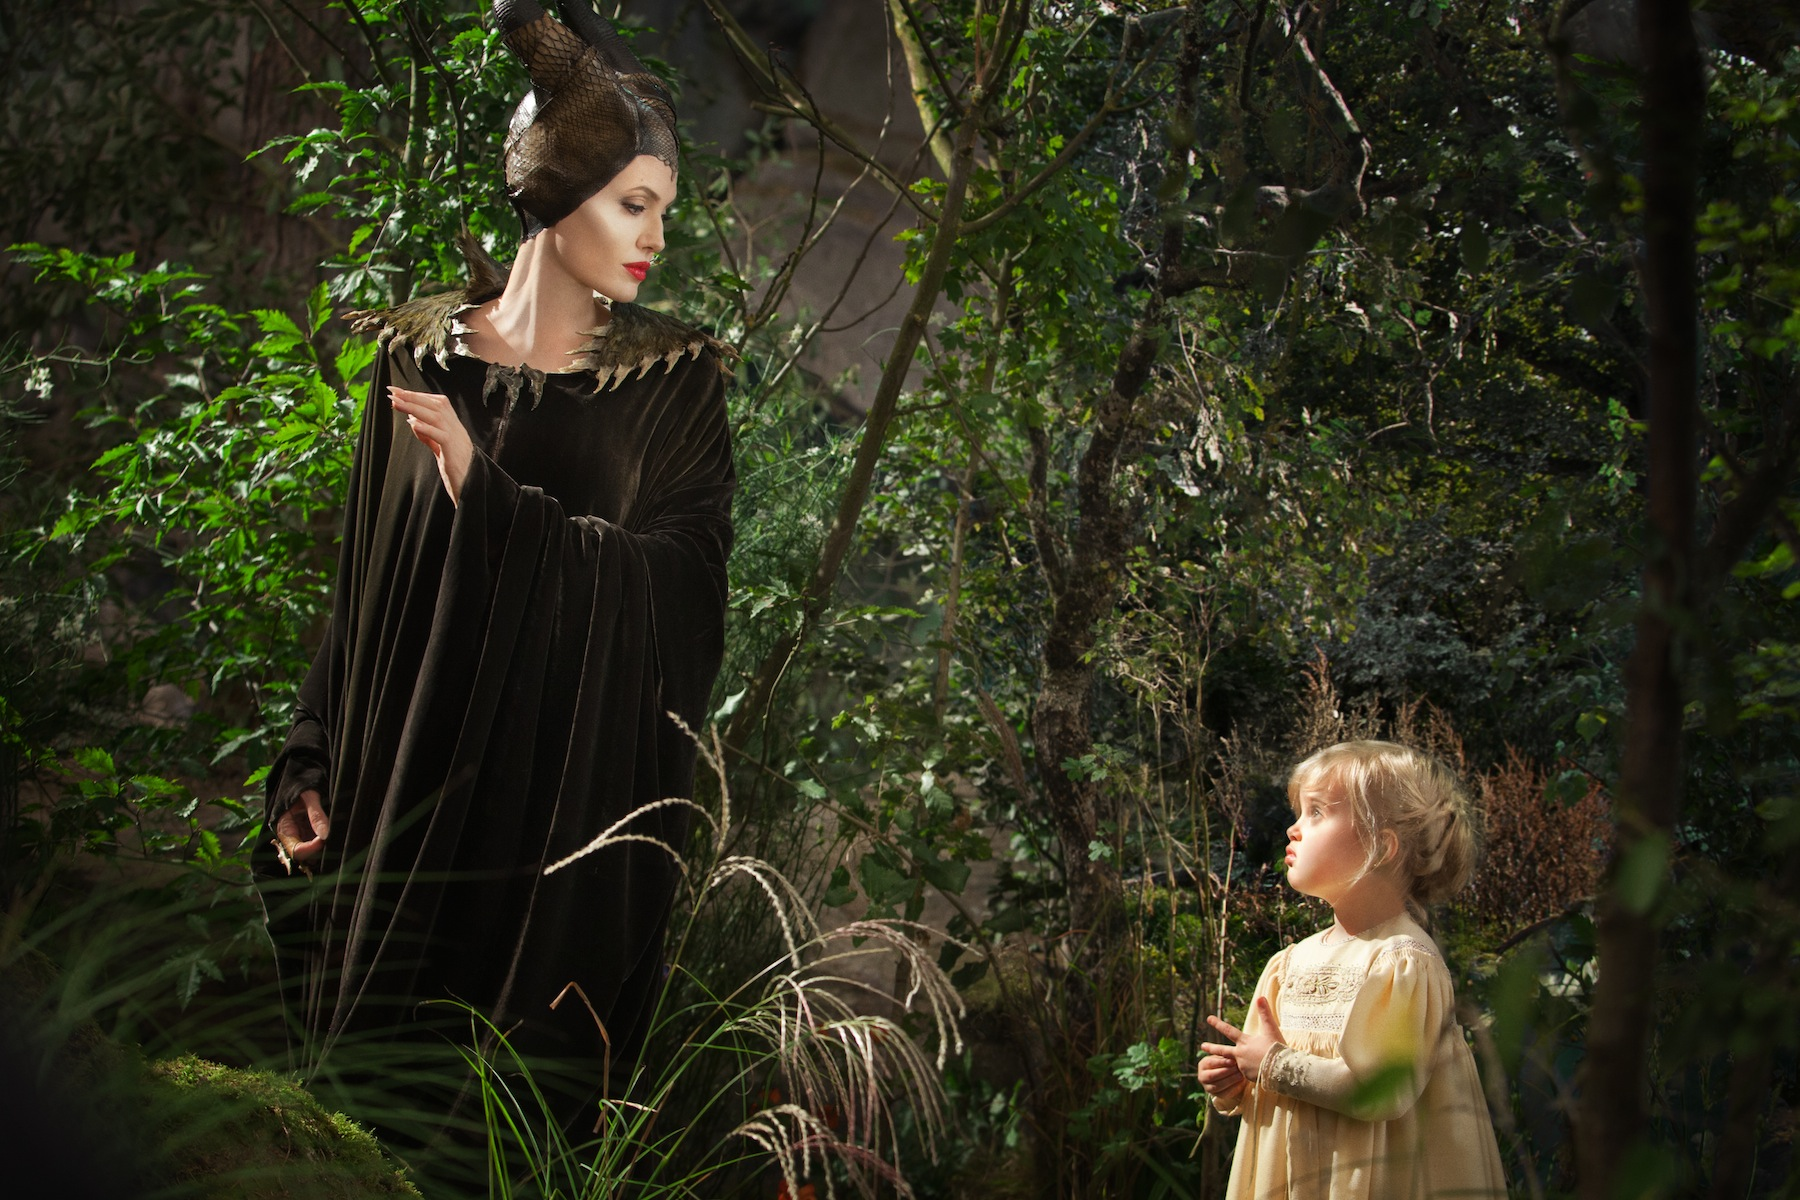 Angelina Jolie as Maleficent, left, in a scene with her daughter Vivienne Jolie-Pitt, portraying Young Aurora, in a scene from   Maleficent.